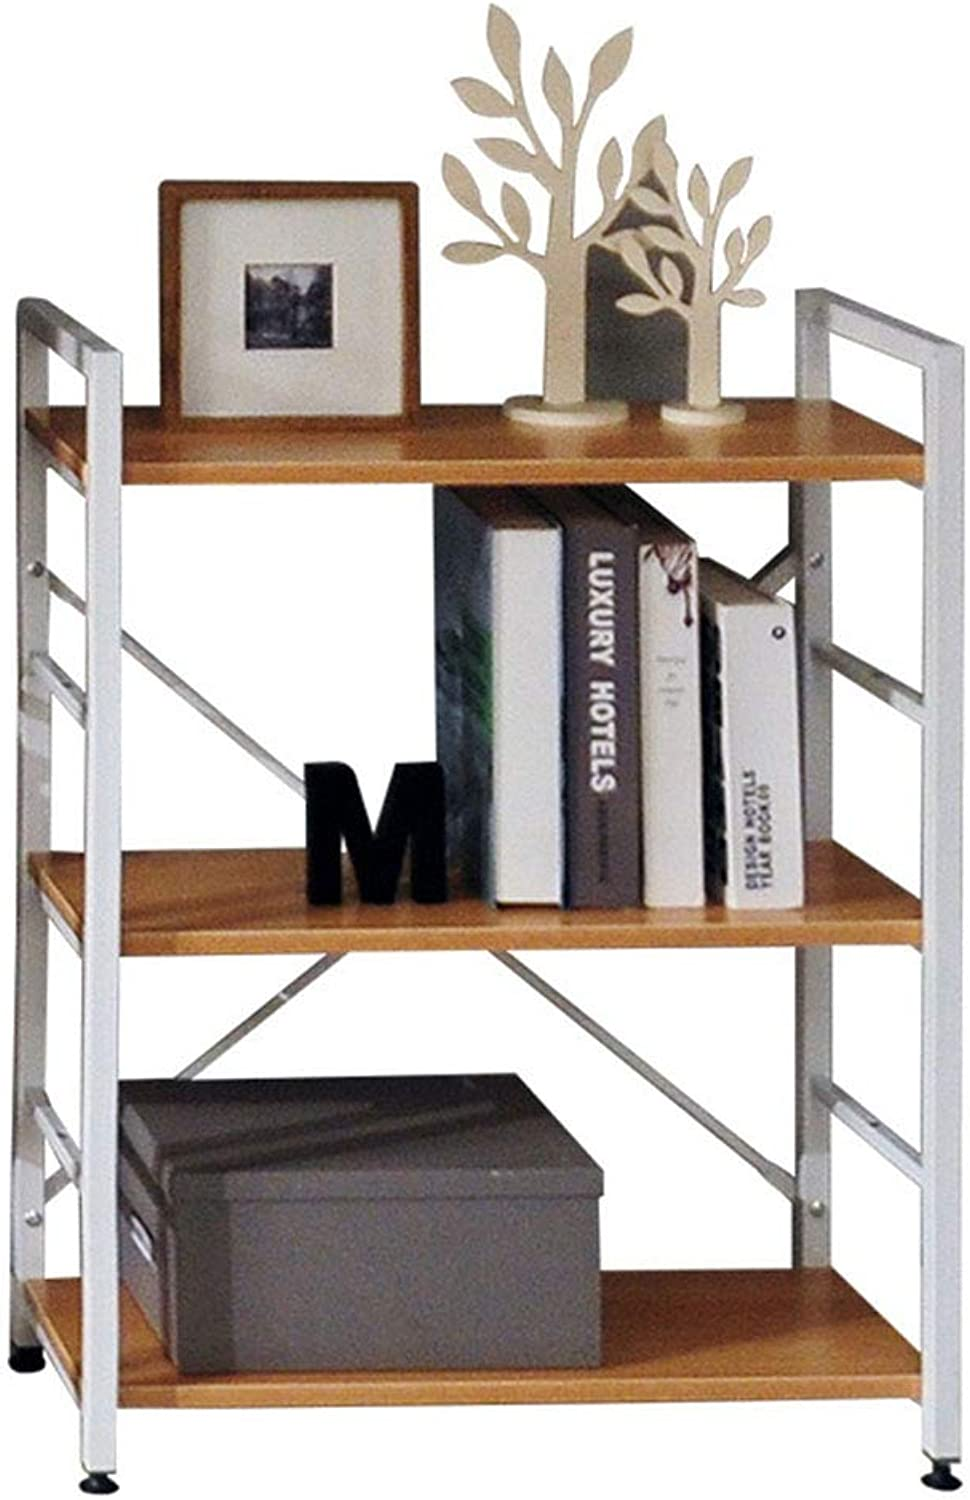 Shelves Storage Rack Shelf Rack Bathroom Shelf Flower Rack Wrought Iron Bookshelf (color   Brown, Size   28  60  82cm)